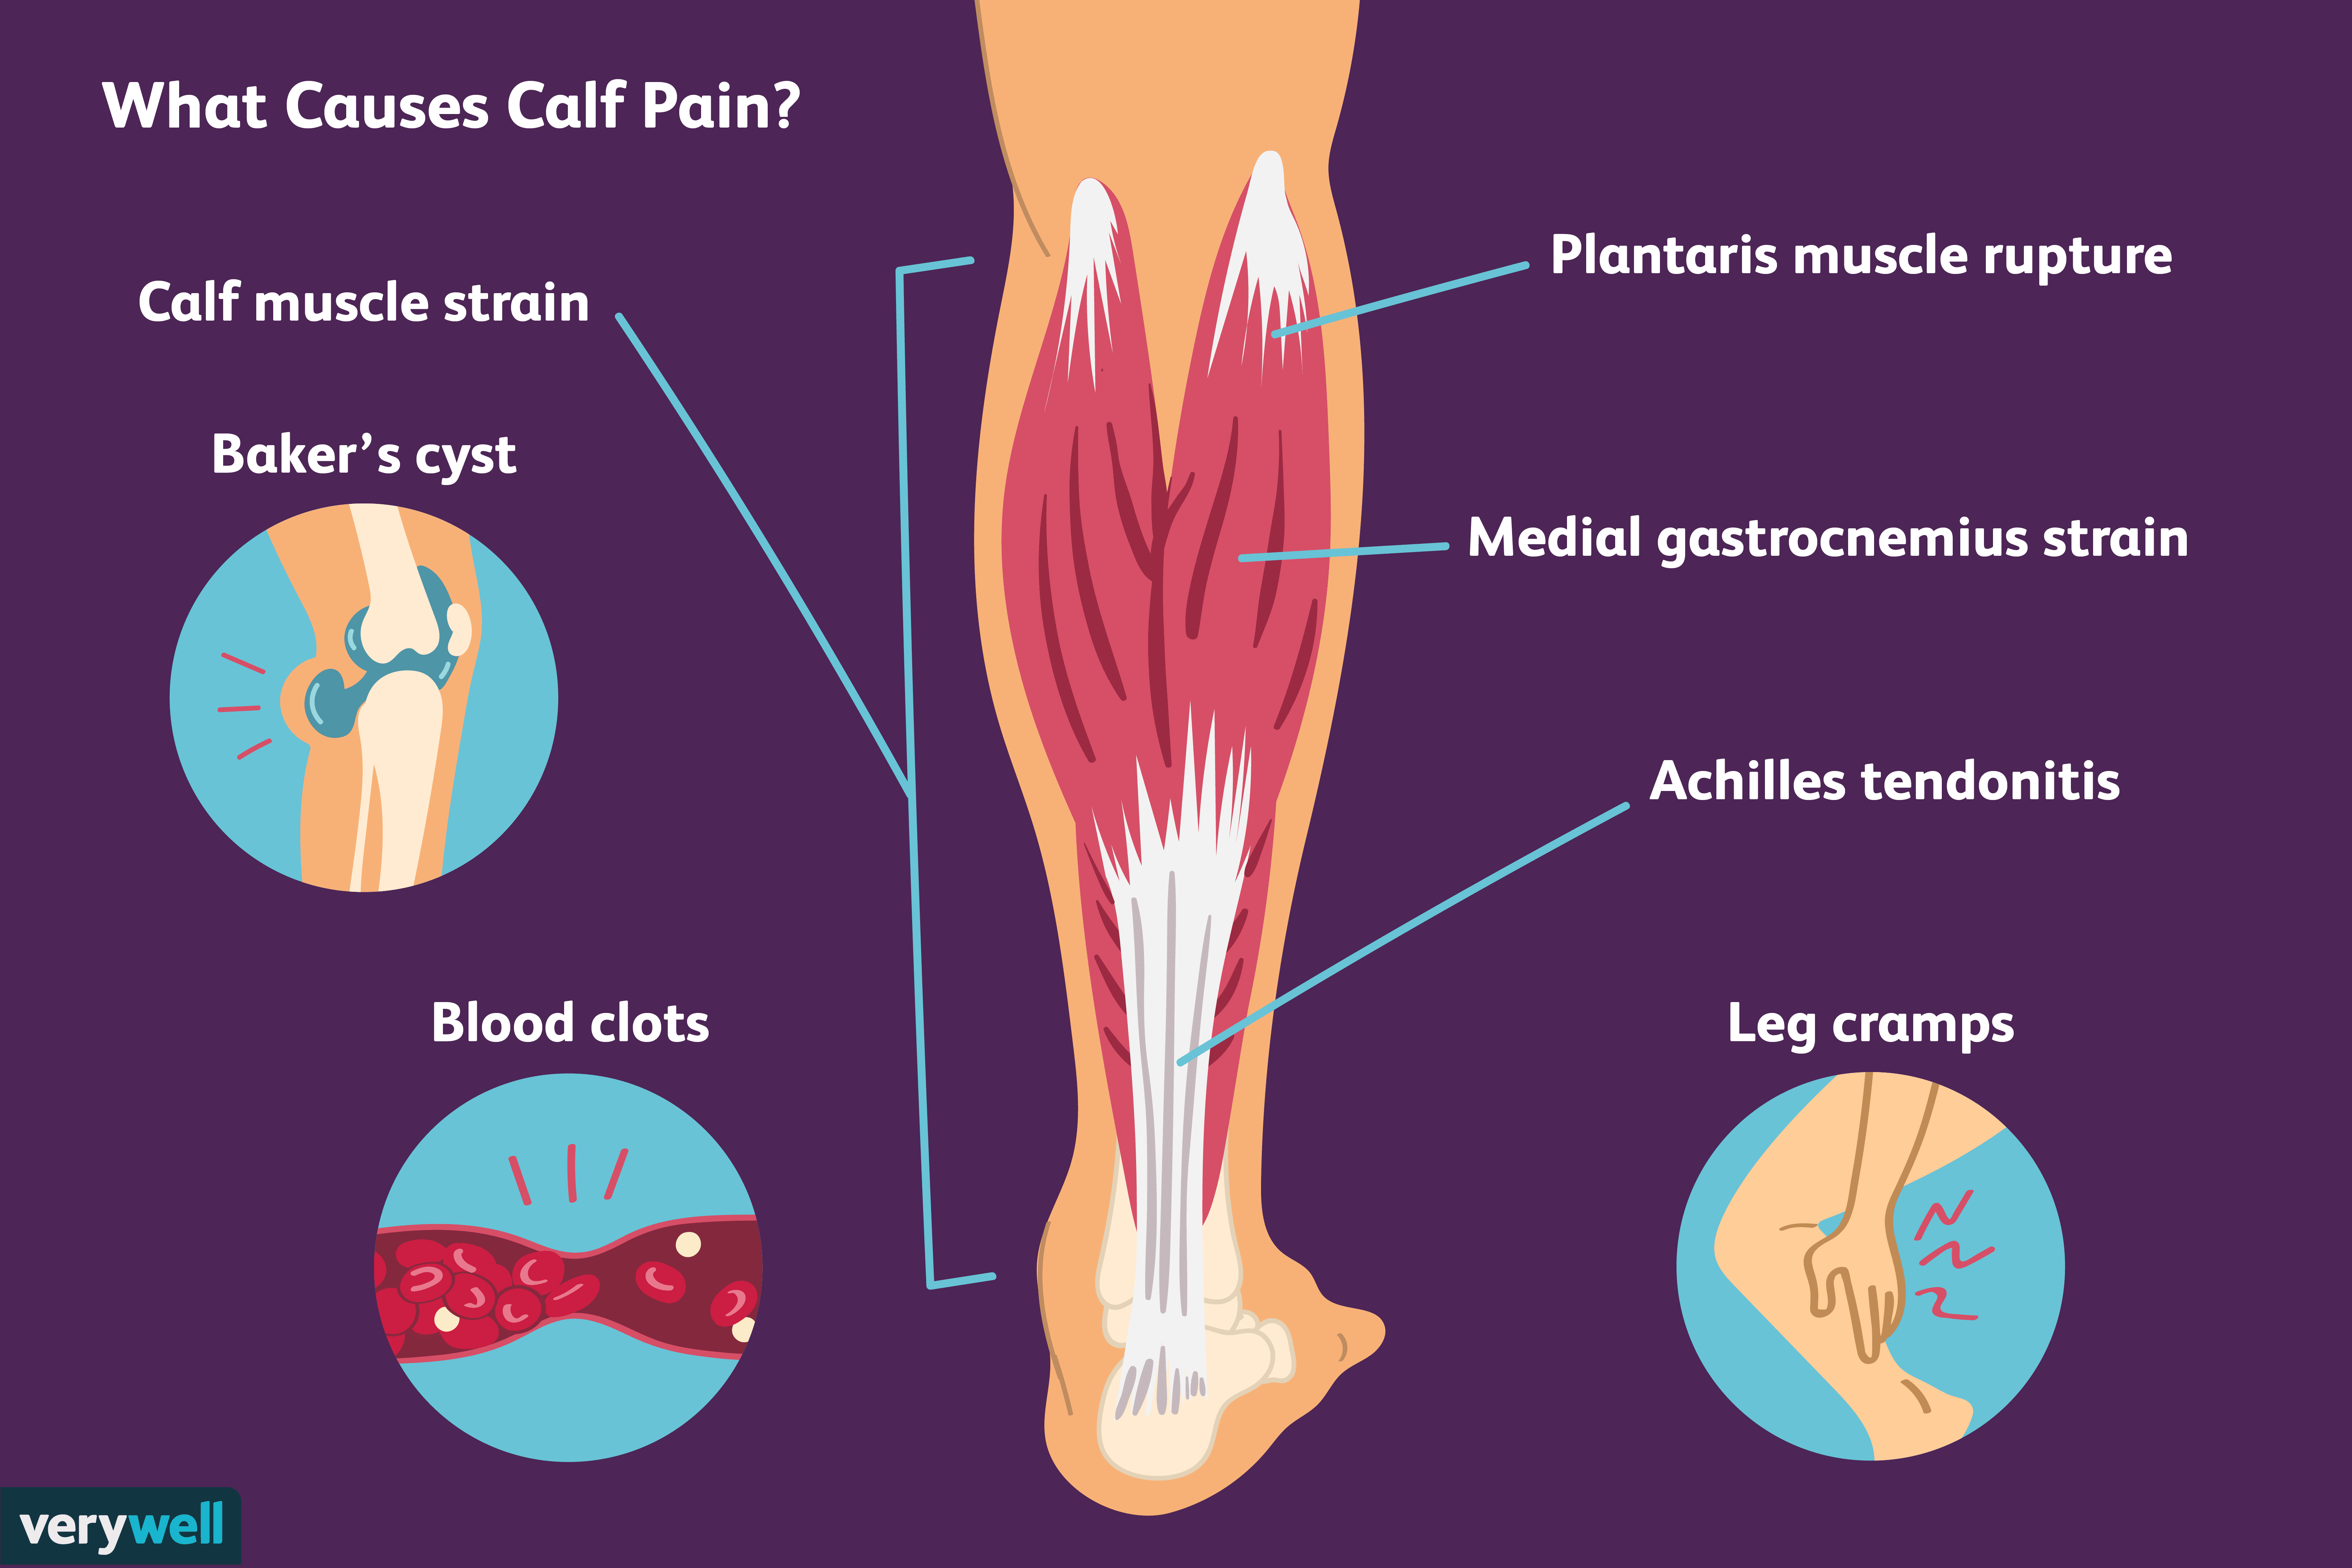 Calf strain and muscle spasm of the leg 7 common causes of calf pain and how to treat them pooptronica